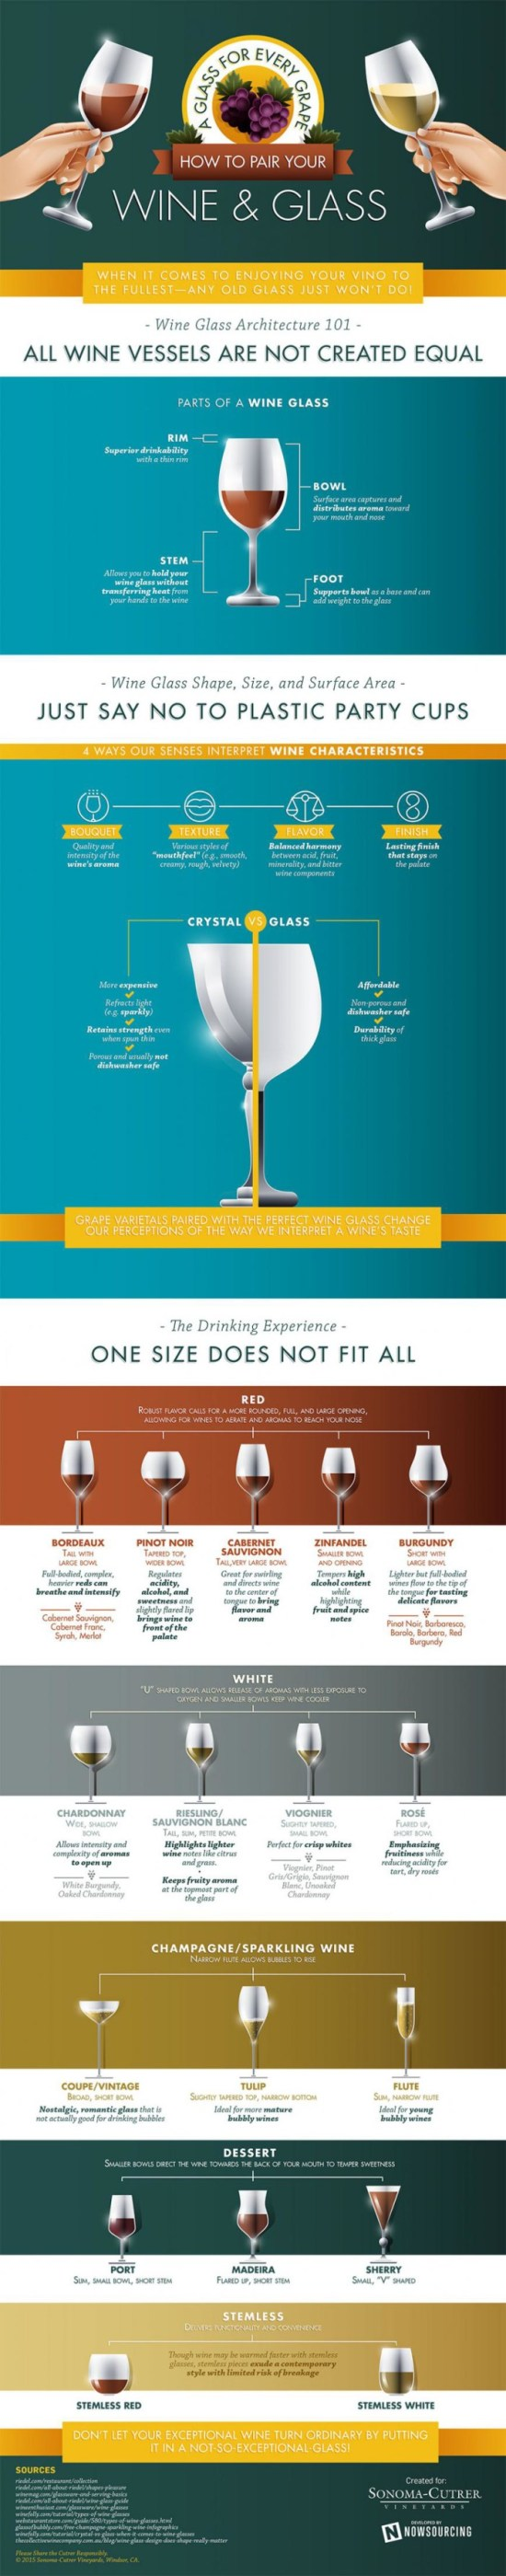 sc_infographic_wine_glass_900